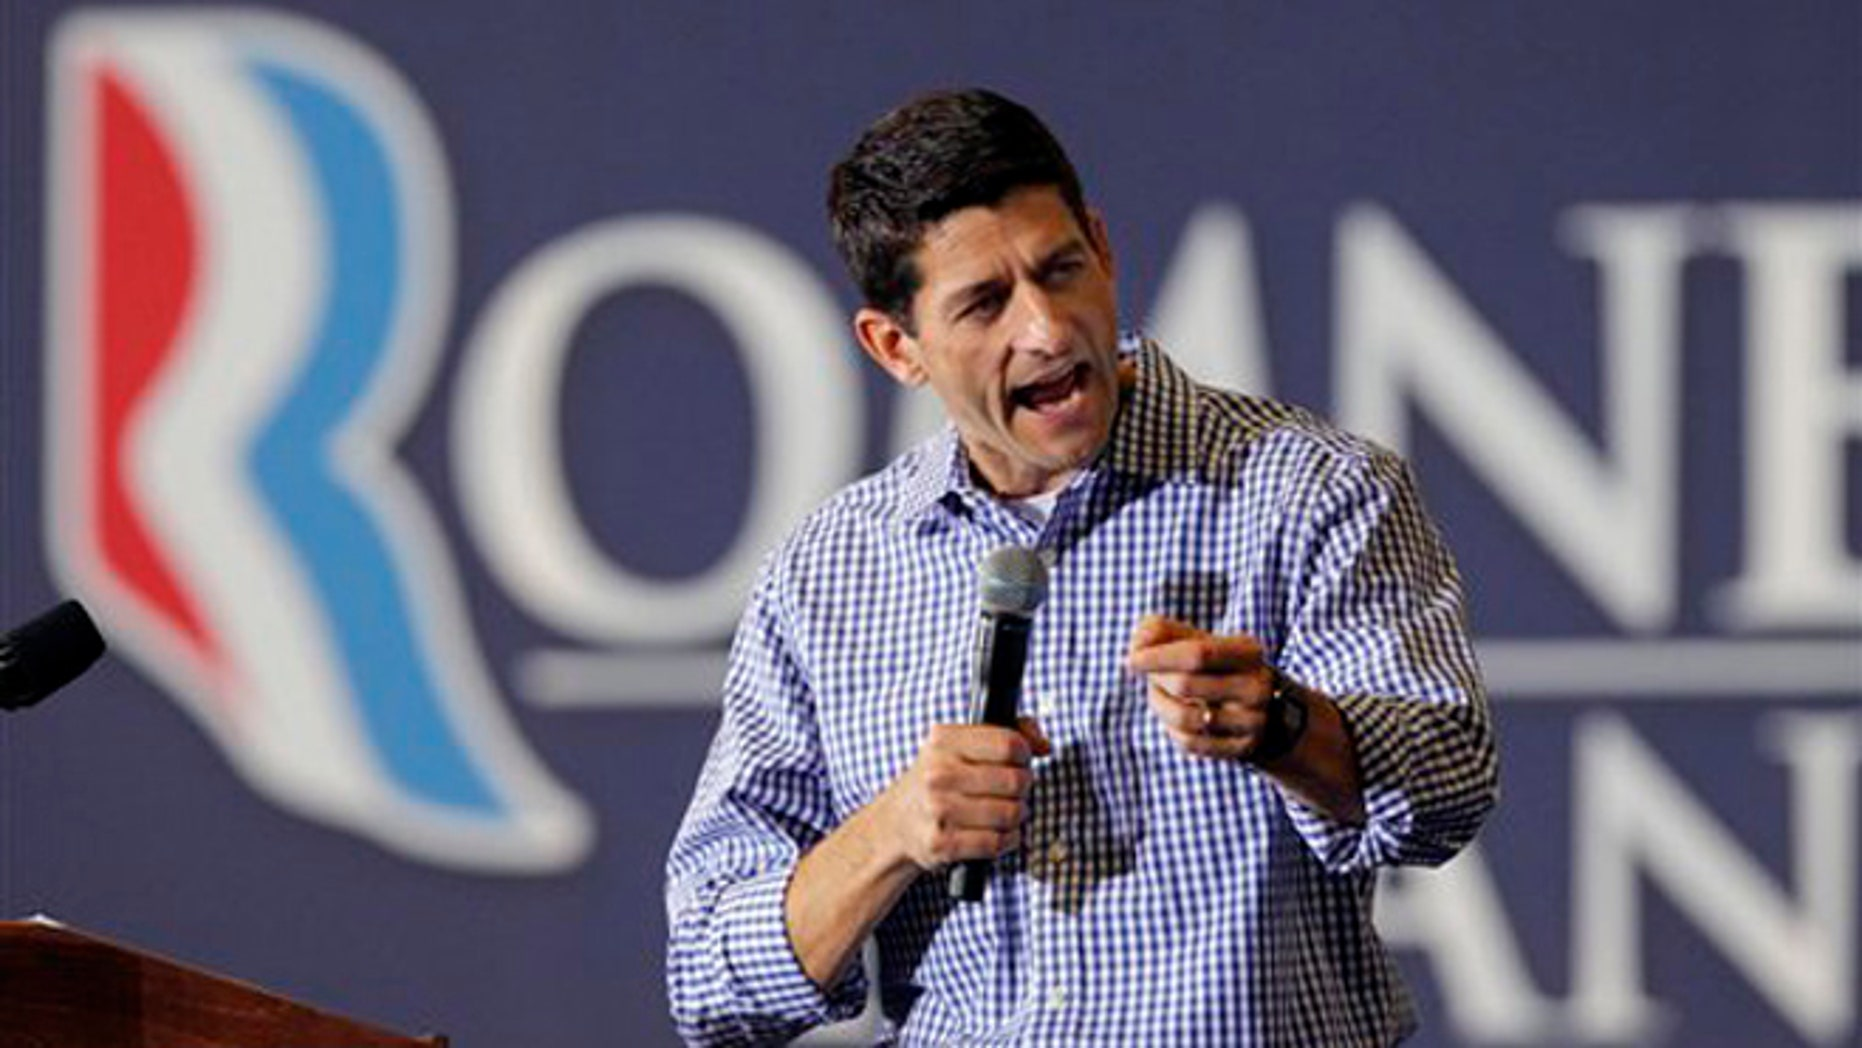 FILE: August 17, 2012: Republican vice presidential candidate Rep. Paul Ryan, R-Wis. speaks during a campaign rally at Deep Run High School in Henrico county,  Va.